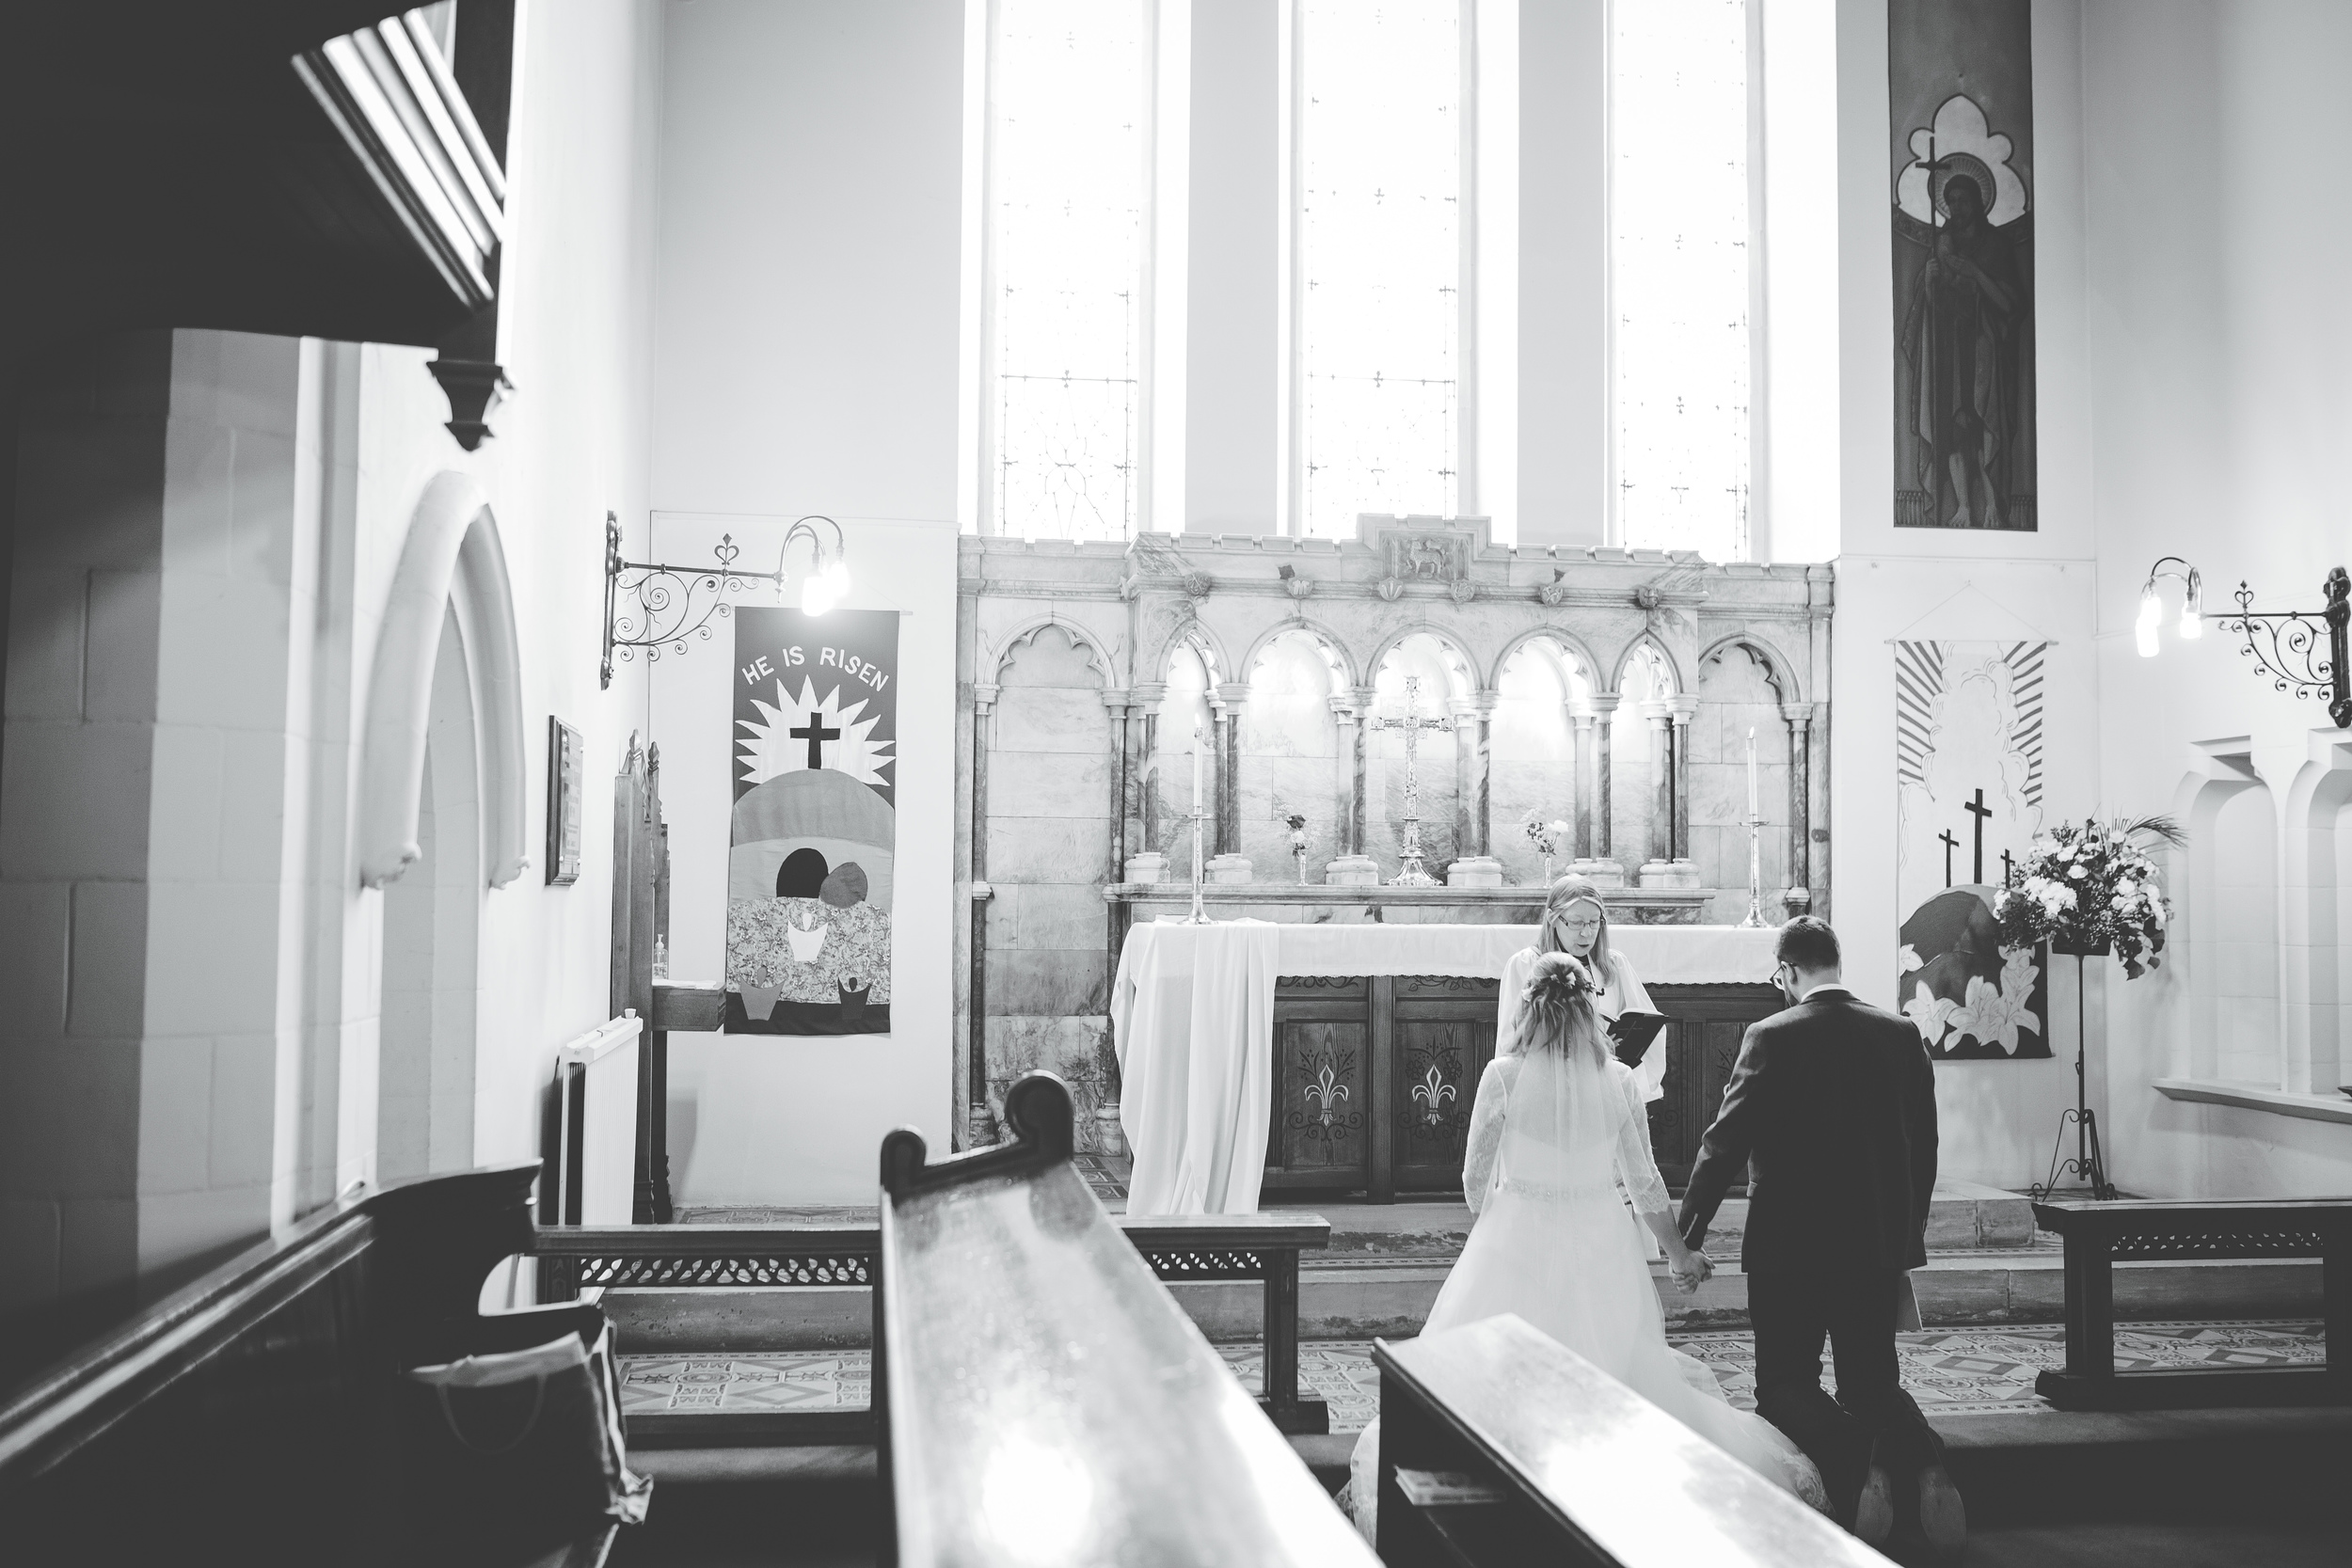 black and white wedding photography cheshire - inside the church